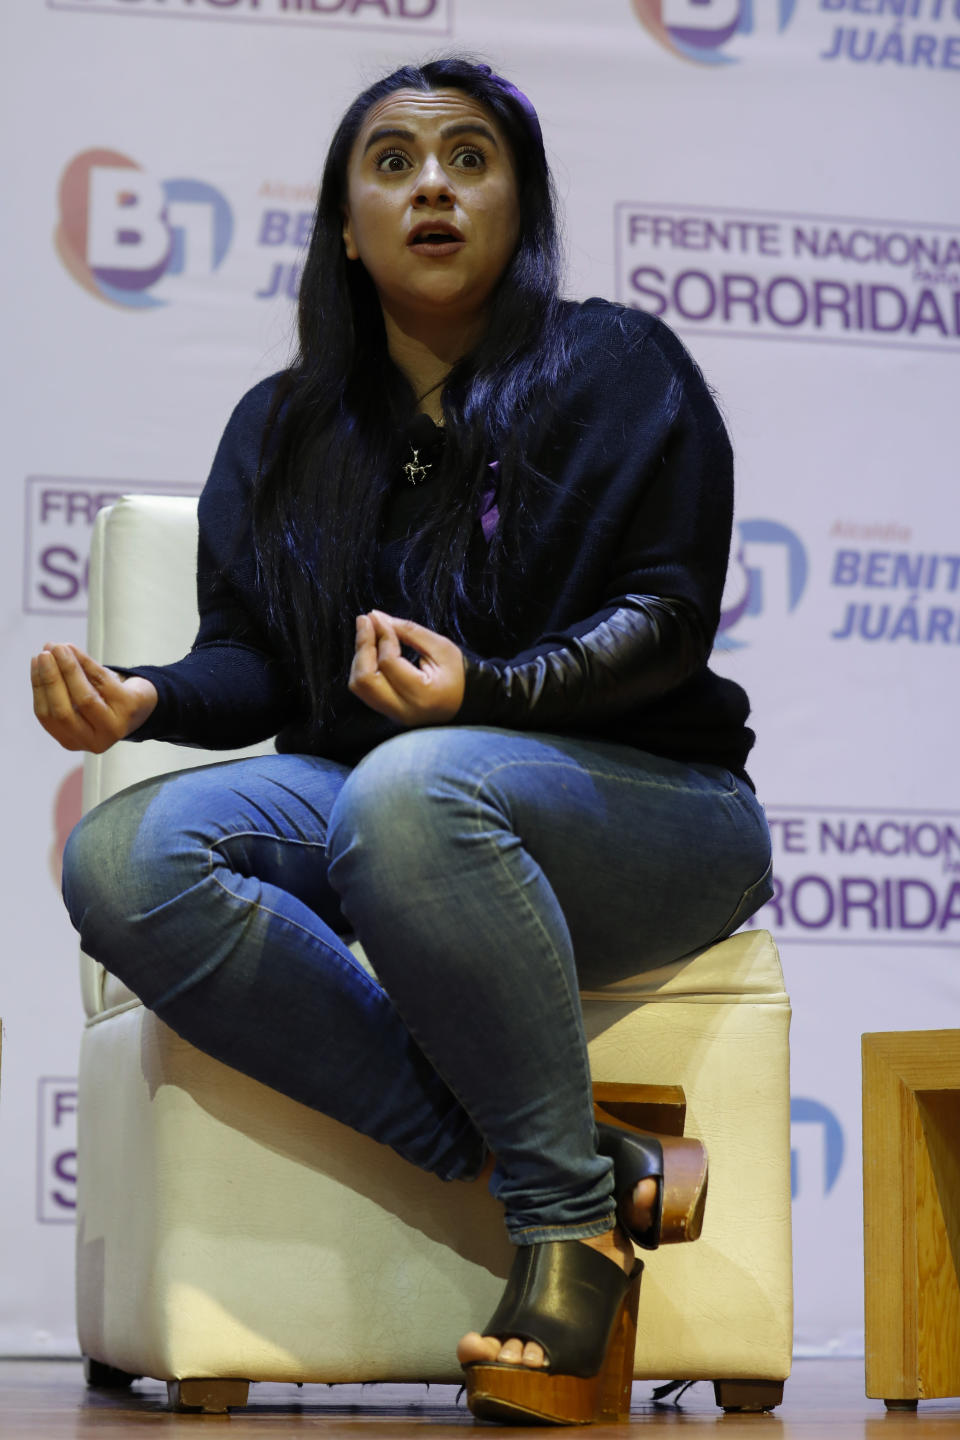 """Olimpia Coral Melo, who became an activist against online sexual harassment and assault after a video of her having sex was published online in 2013, speaks during a live broadcast with Benito Juarez borough Mayor Santiago Taboada, in Mexico City, Monday, Nov. 23, 2020. Melo's story and subsequent activism have led to the creation of numerous state laws against cyber violence, and Mexico's government is on the verge of passing a federal version of """"Olimpia's Law."""" (AP Photo/Rebecca Blackwell)"""